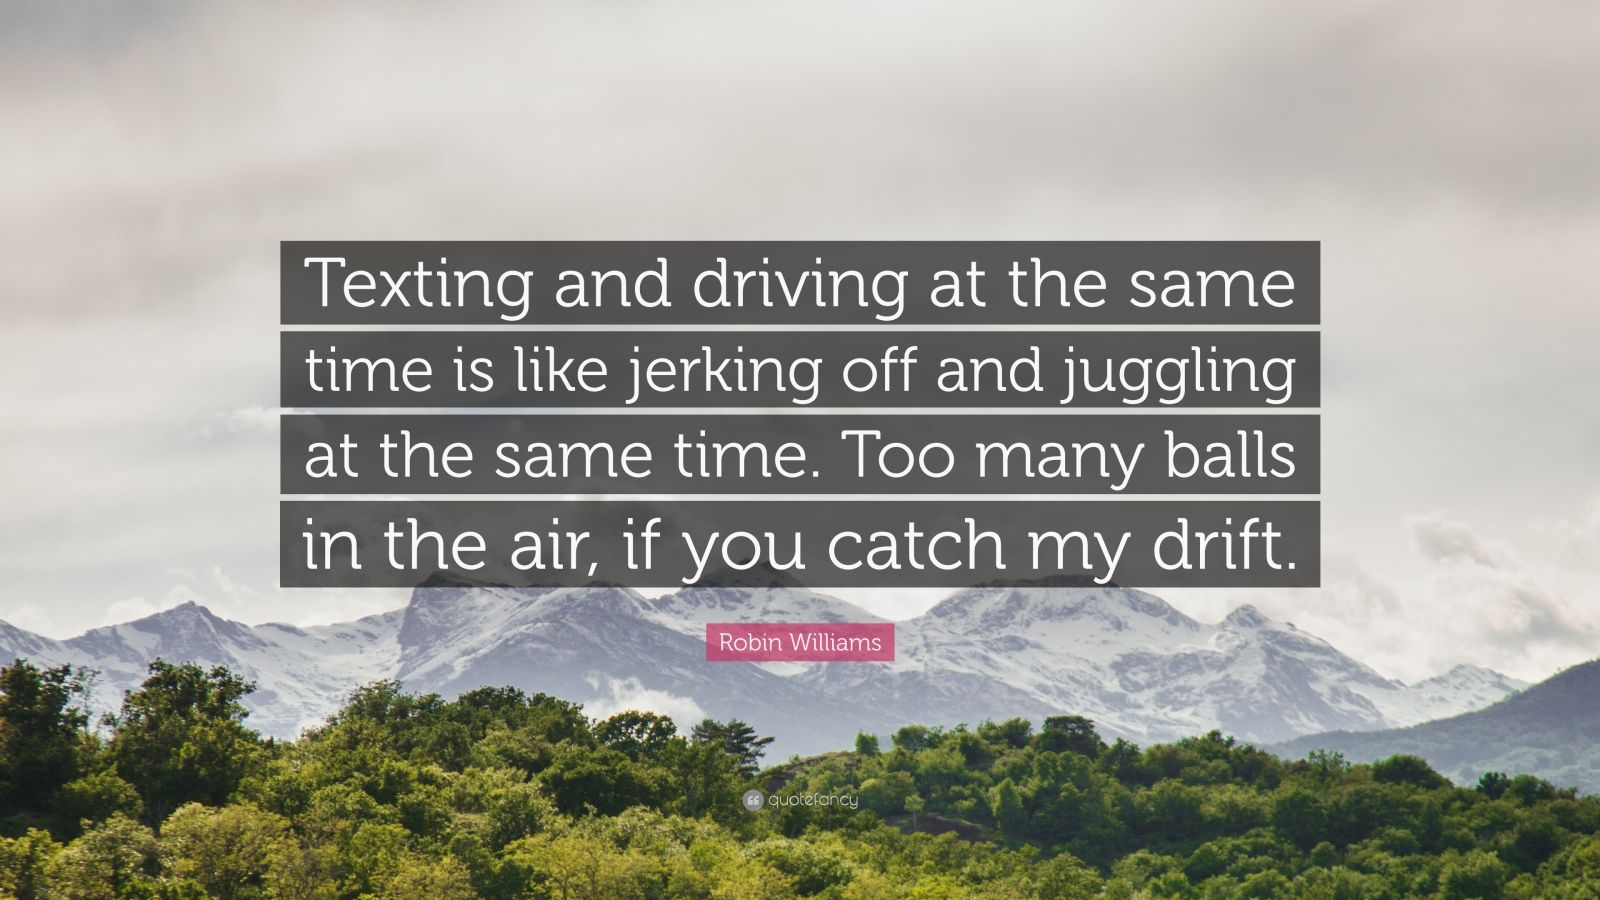 Delightful Robin Williams Quote: U201cTexting And Driving At The Same Time Is Like Jerking  Off